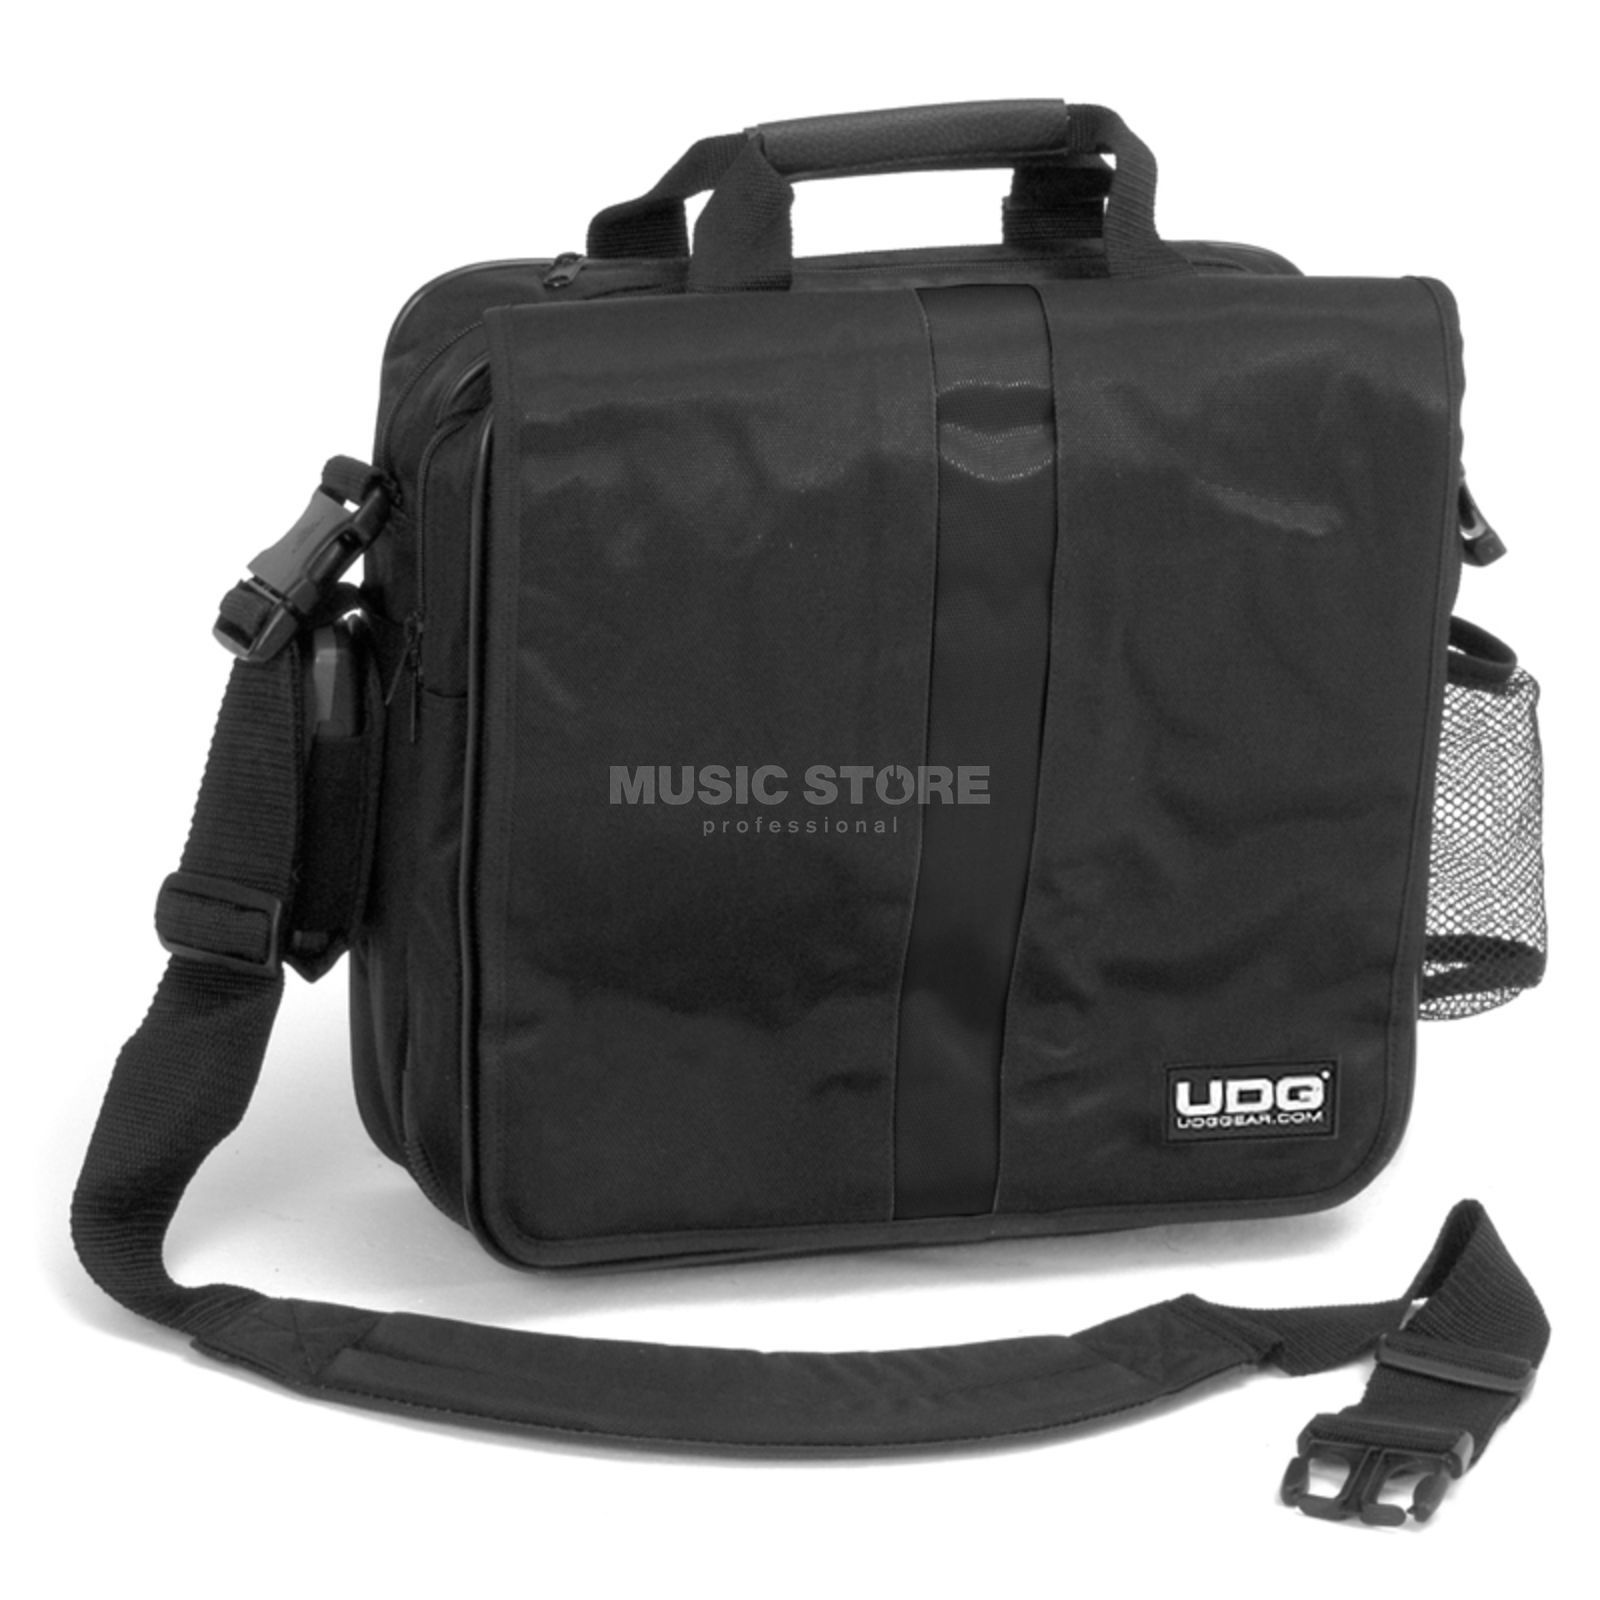 UDG UDG CourierBag Deluxe Black/ Orange (U9470BL/OR) Produktbillede